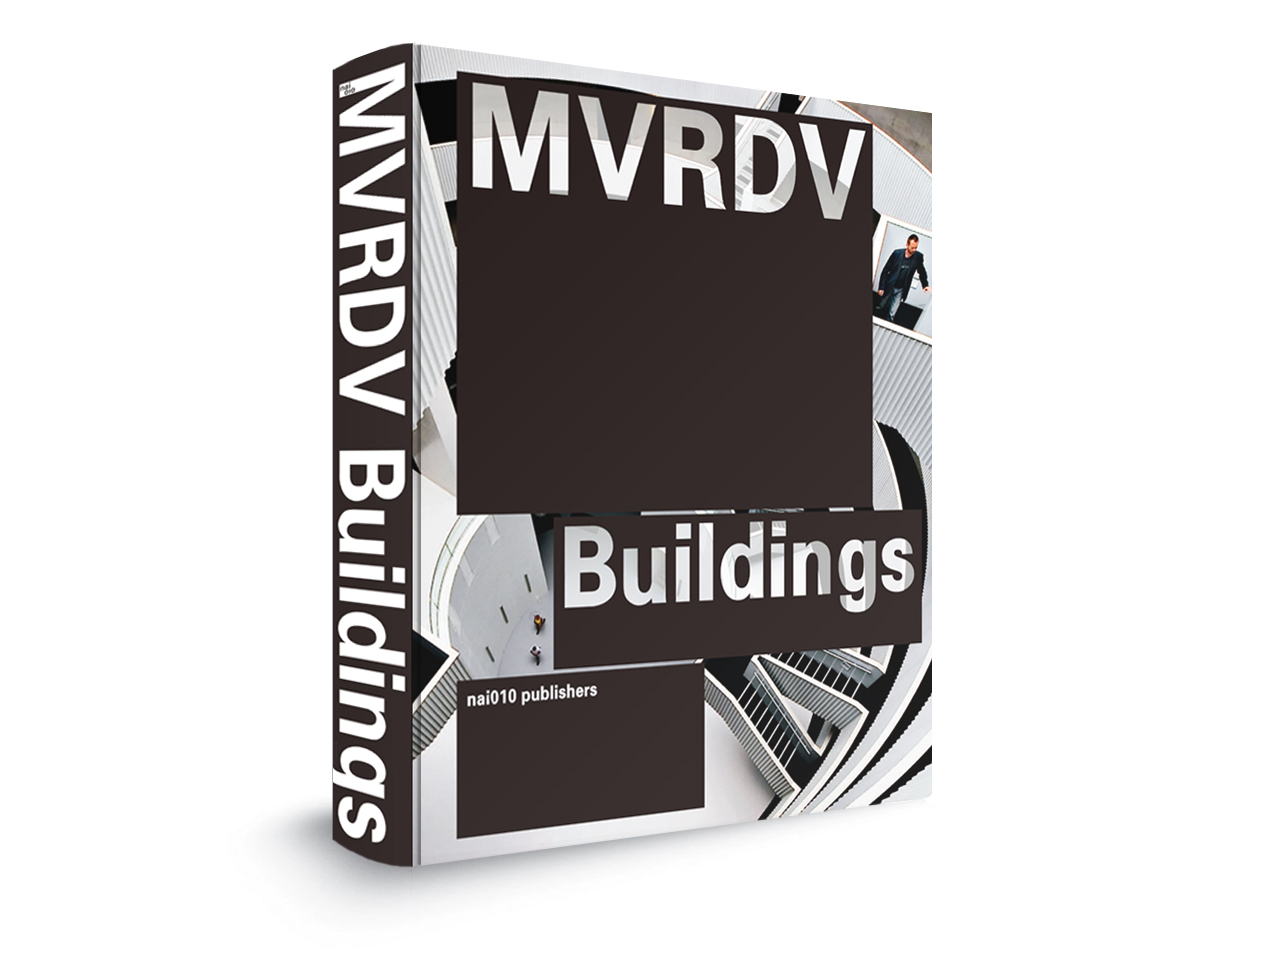 now Available to Pre-Order: MVRDV's First ARCHITECTURAL Monograph  'MVRDV buildings'